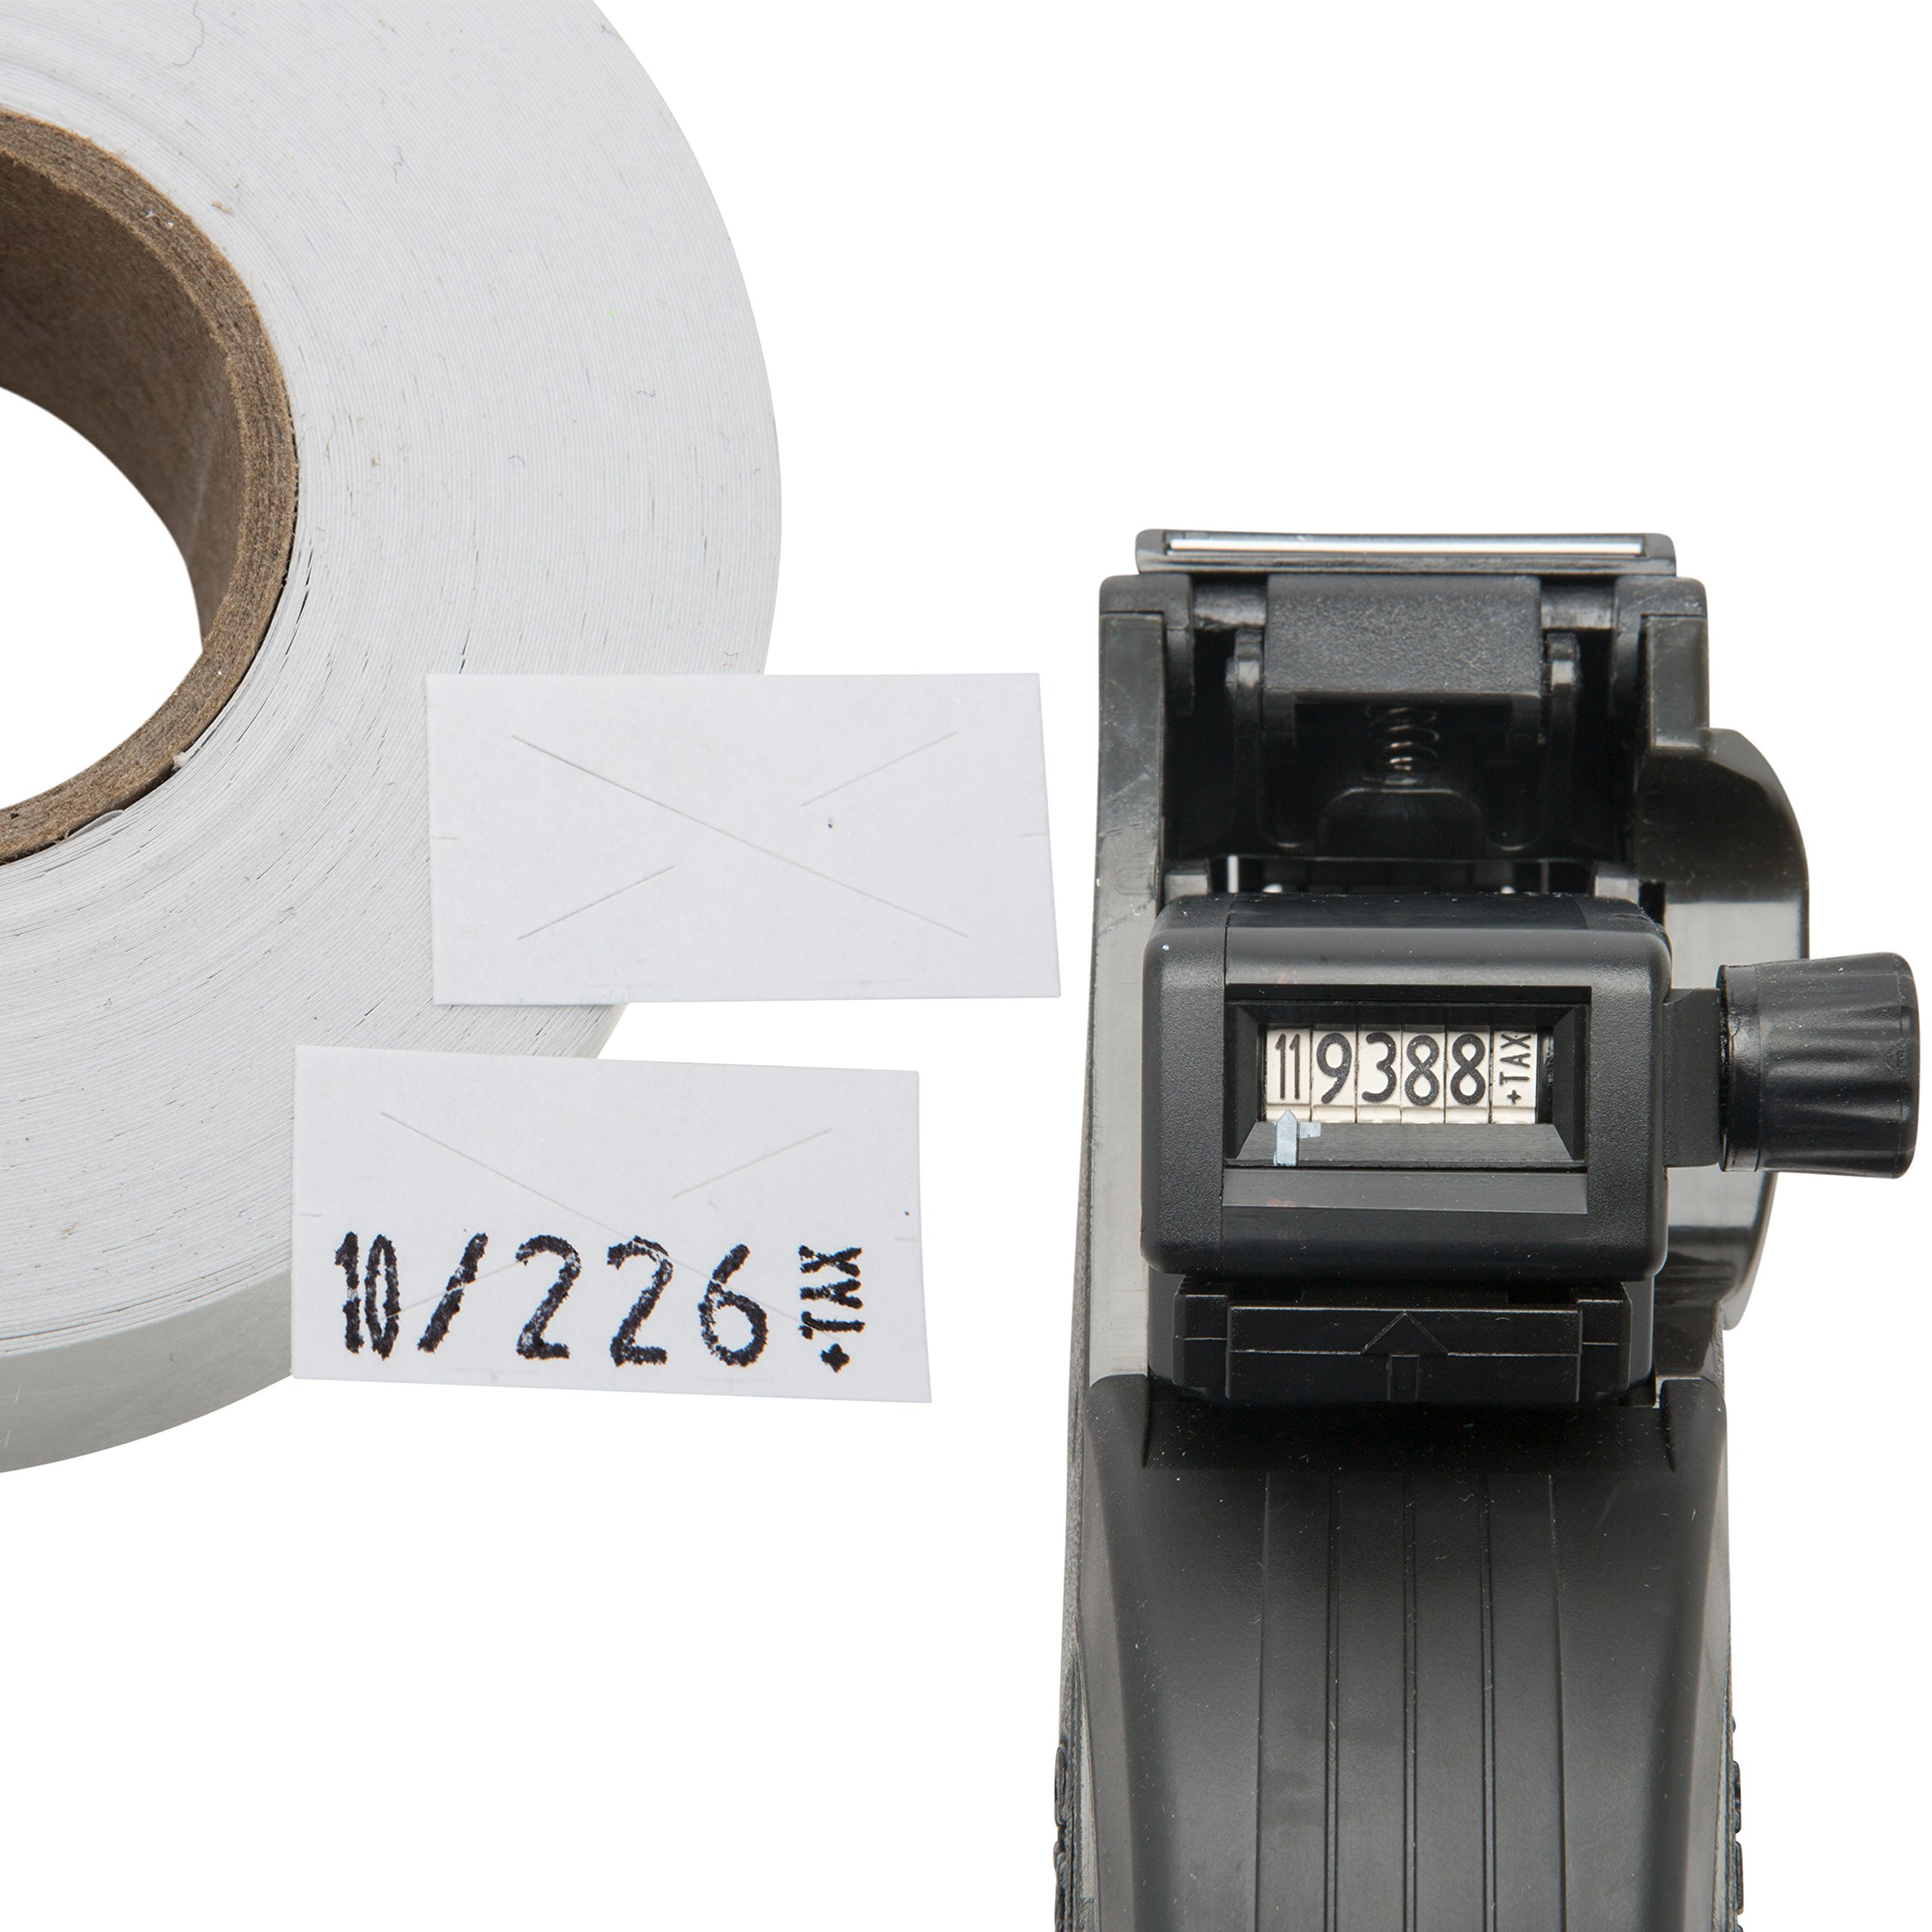 Garvey 22-6 One Line Price Marking Gun Kit: Includes Price Gun, 5,000 White Pricing Labels and Preloaded Inker by Perco (Image #5)